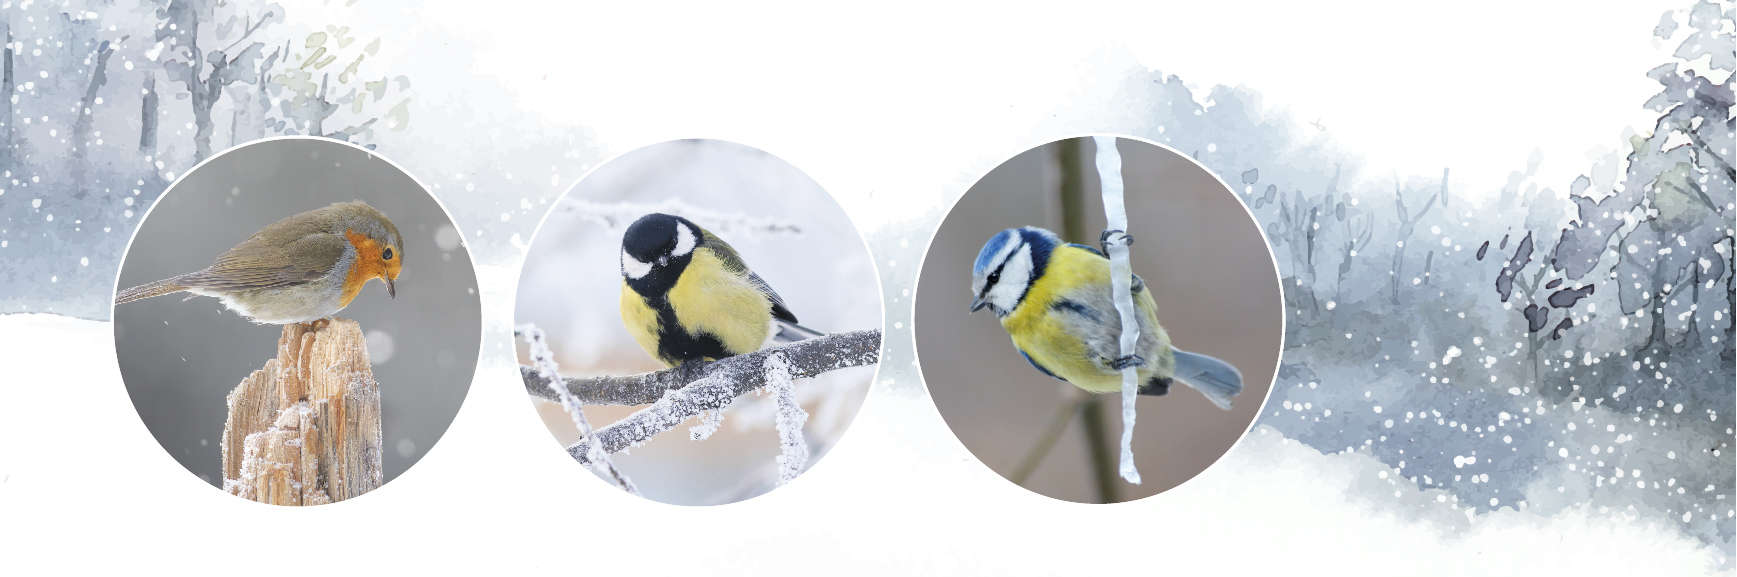 How Garden Birds Keep Warm Throughout Winter